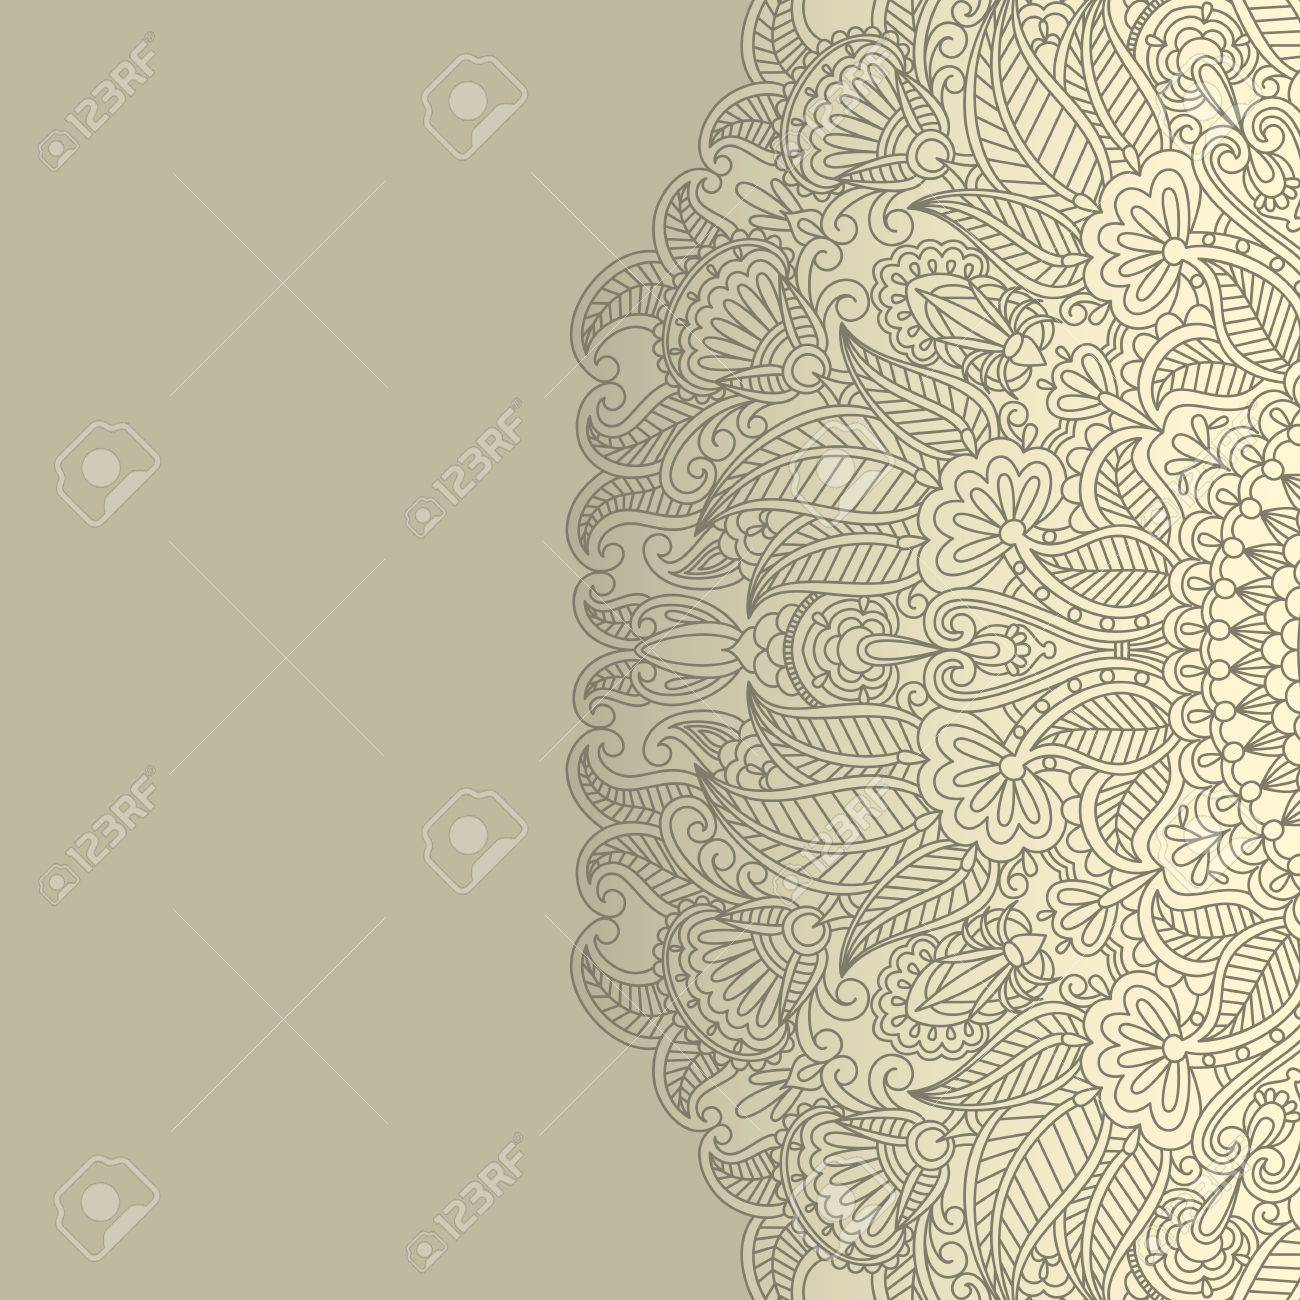 illustration with floral ornament for print. Stock Vector - 14477899